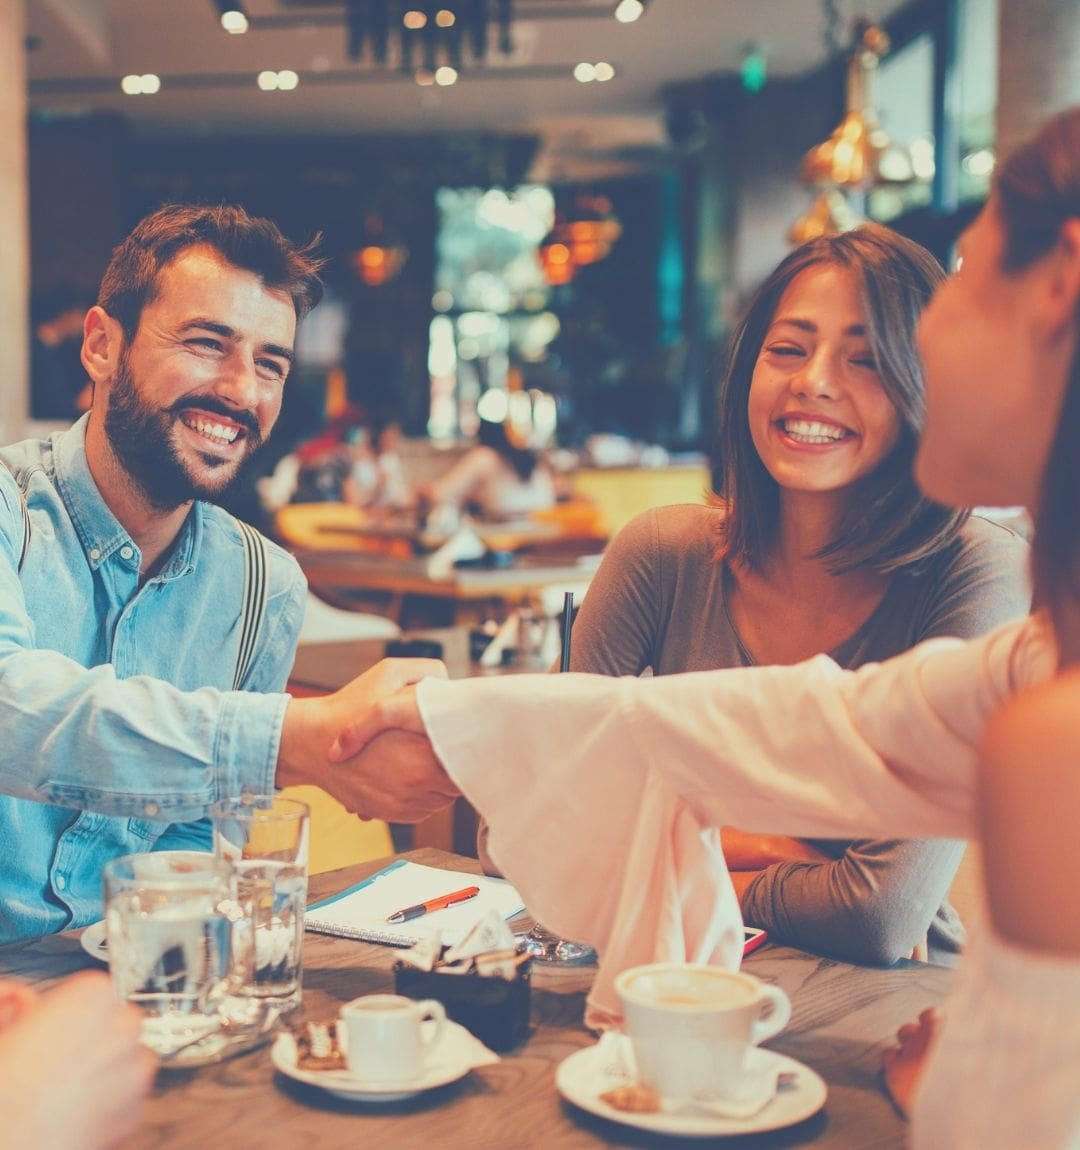 How To Meet People 35 Best Places For Making New Friends